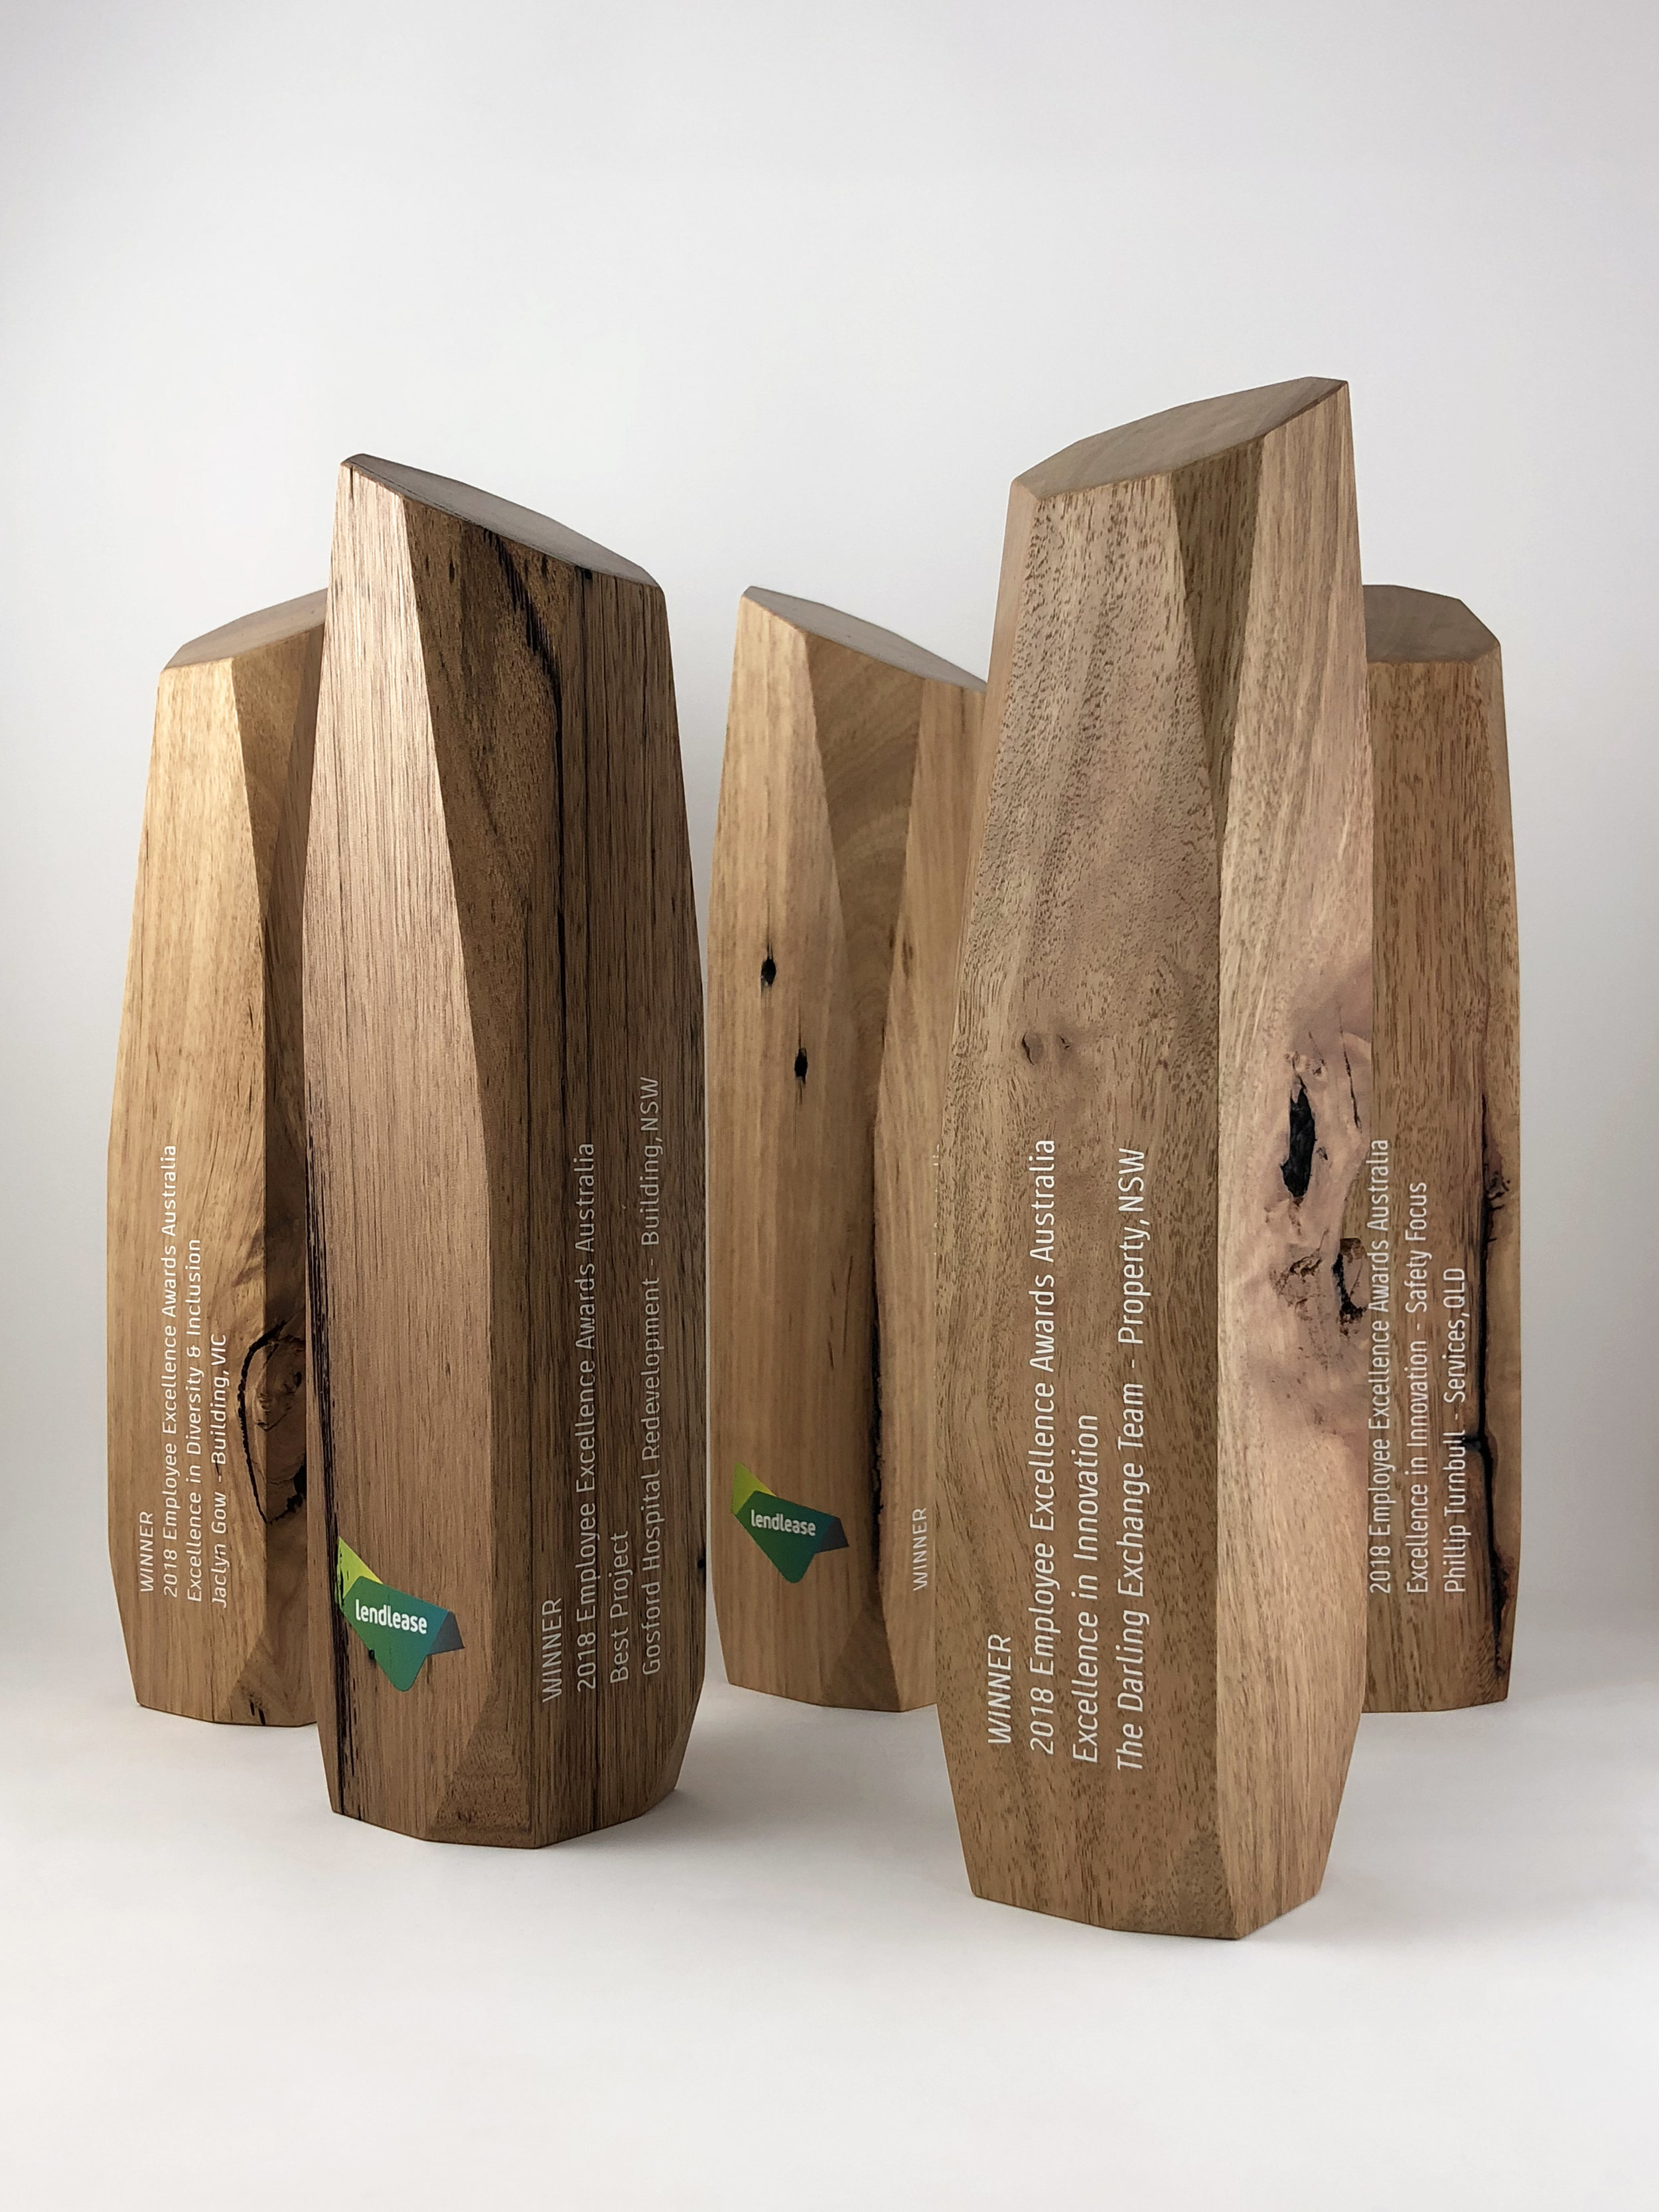 lendlease-reclaimed-timber-awards-trophy-01.jpg